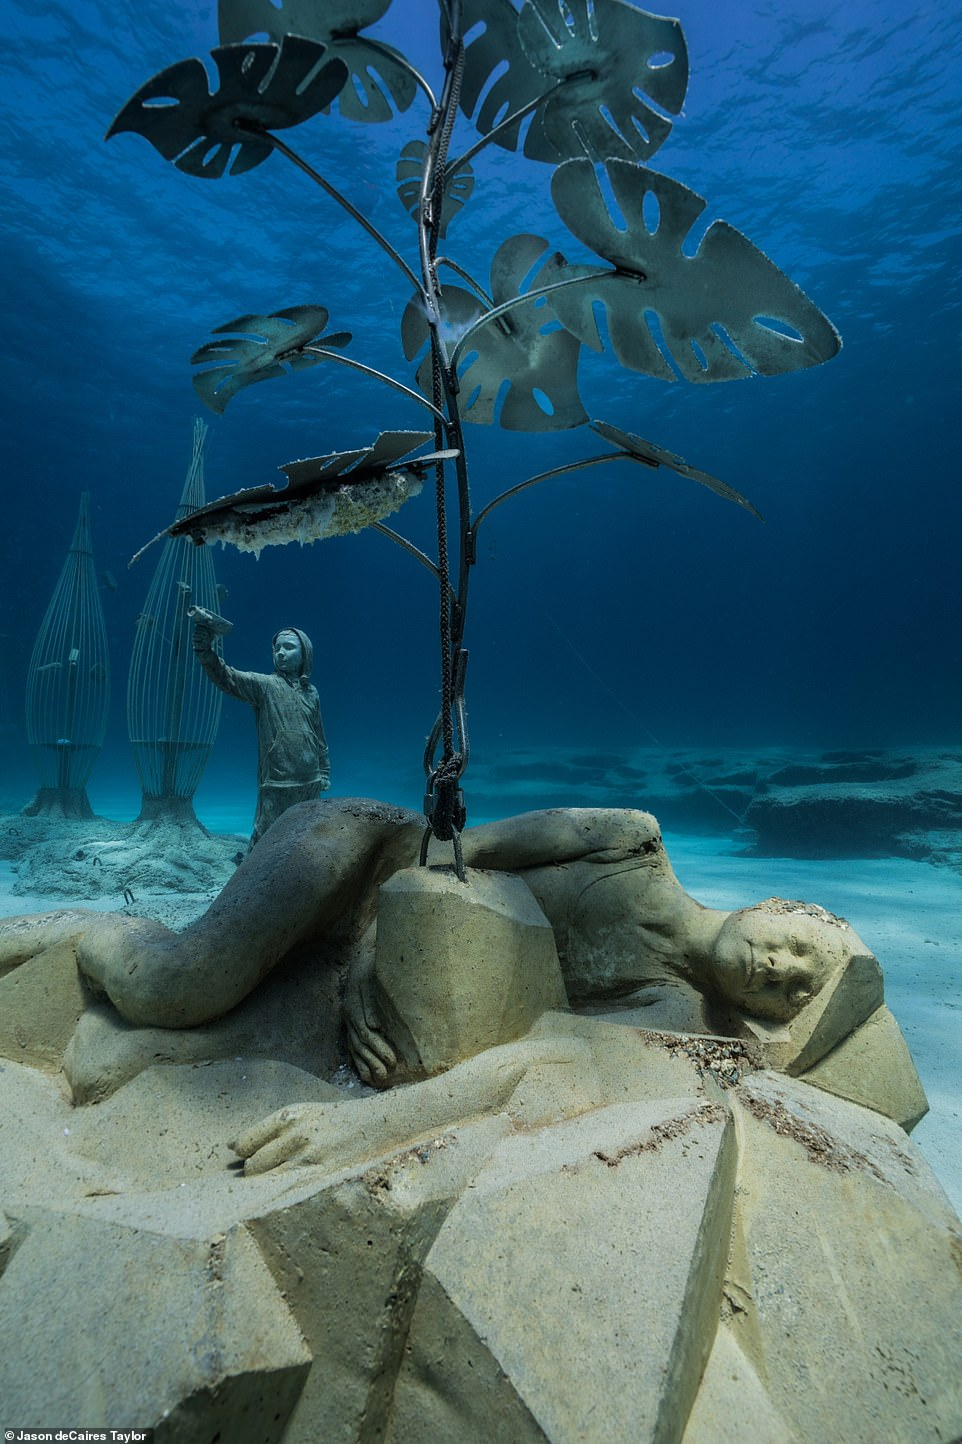 DeCaires Taylor has designed aquatic sculpture gardens across the world, everywhere from Mexico to Cannes